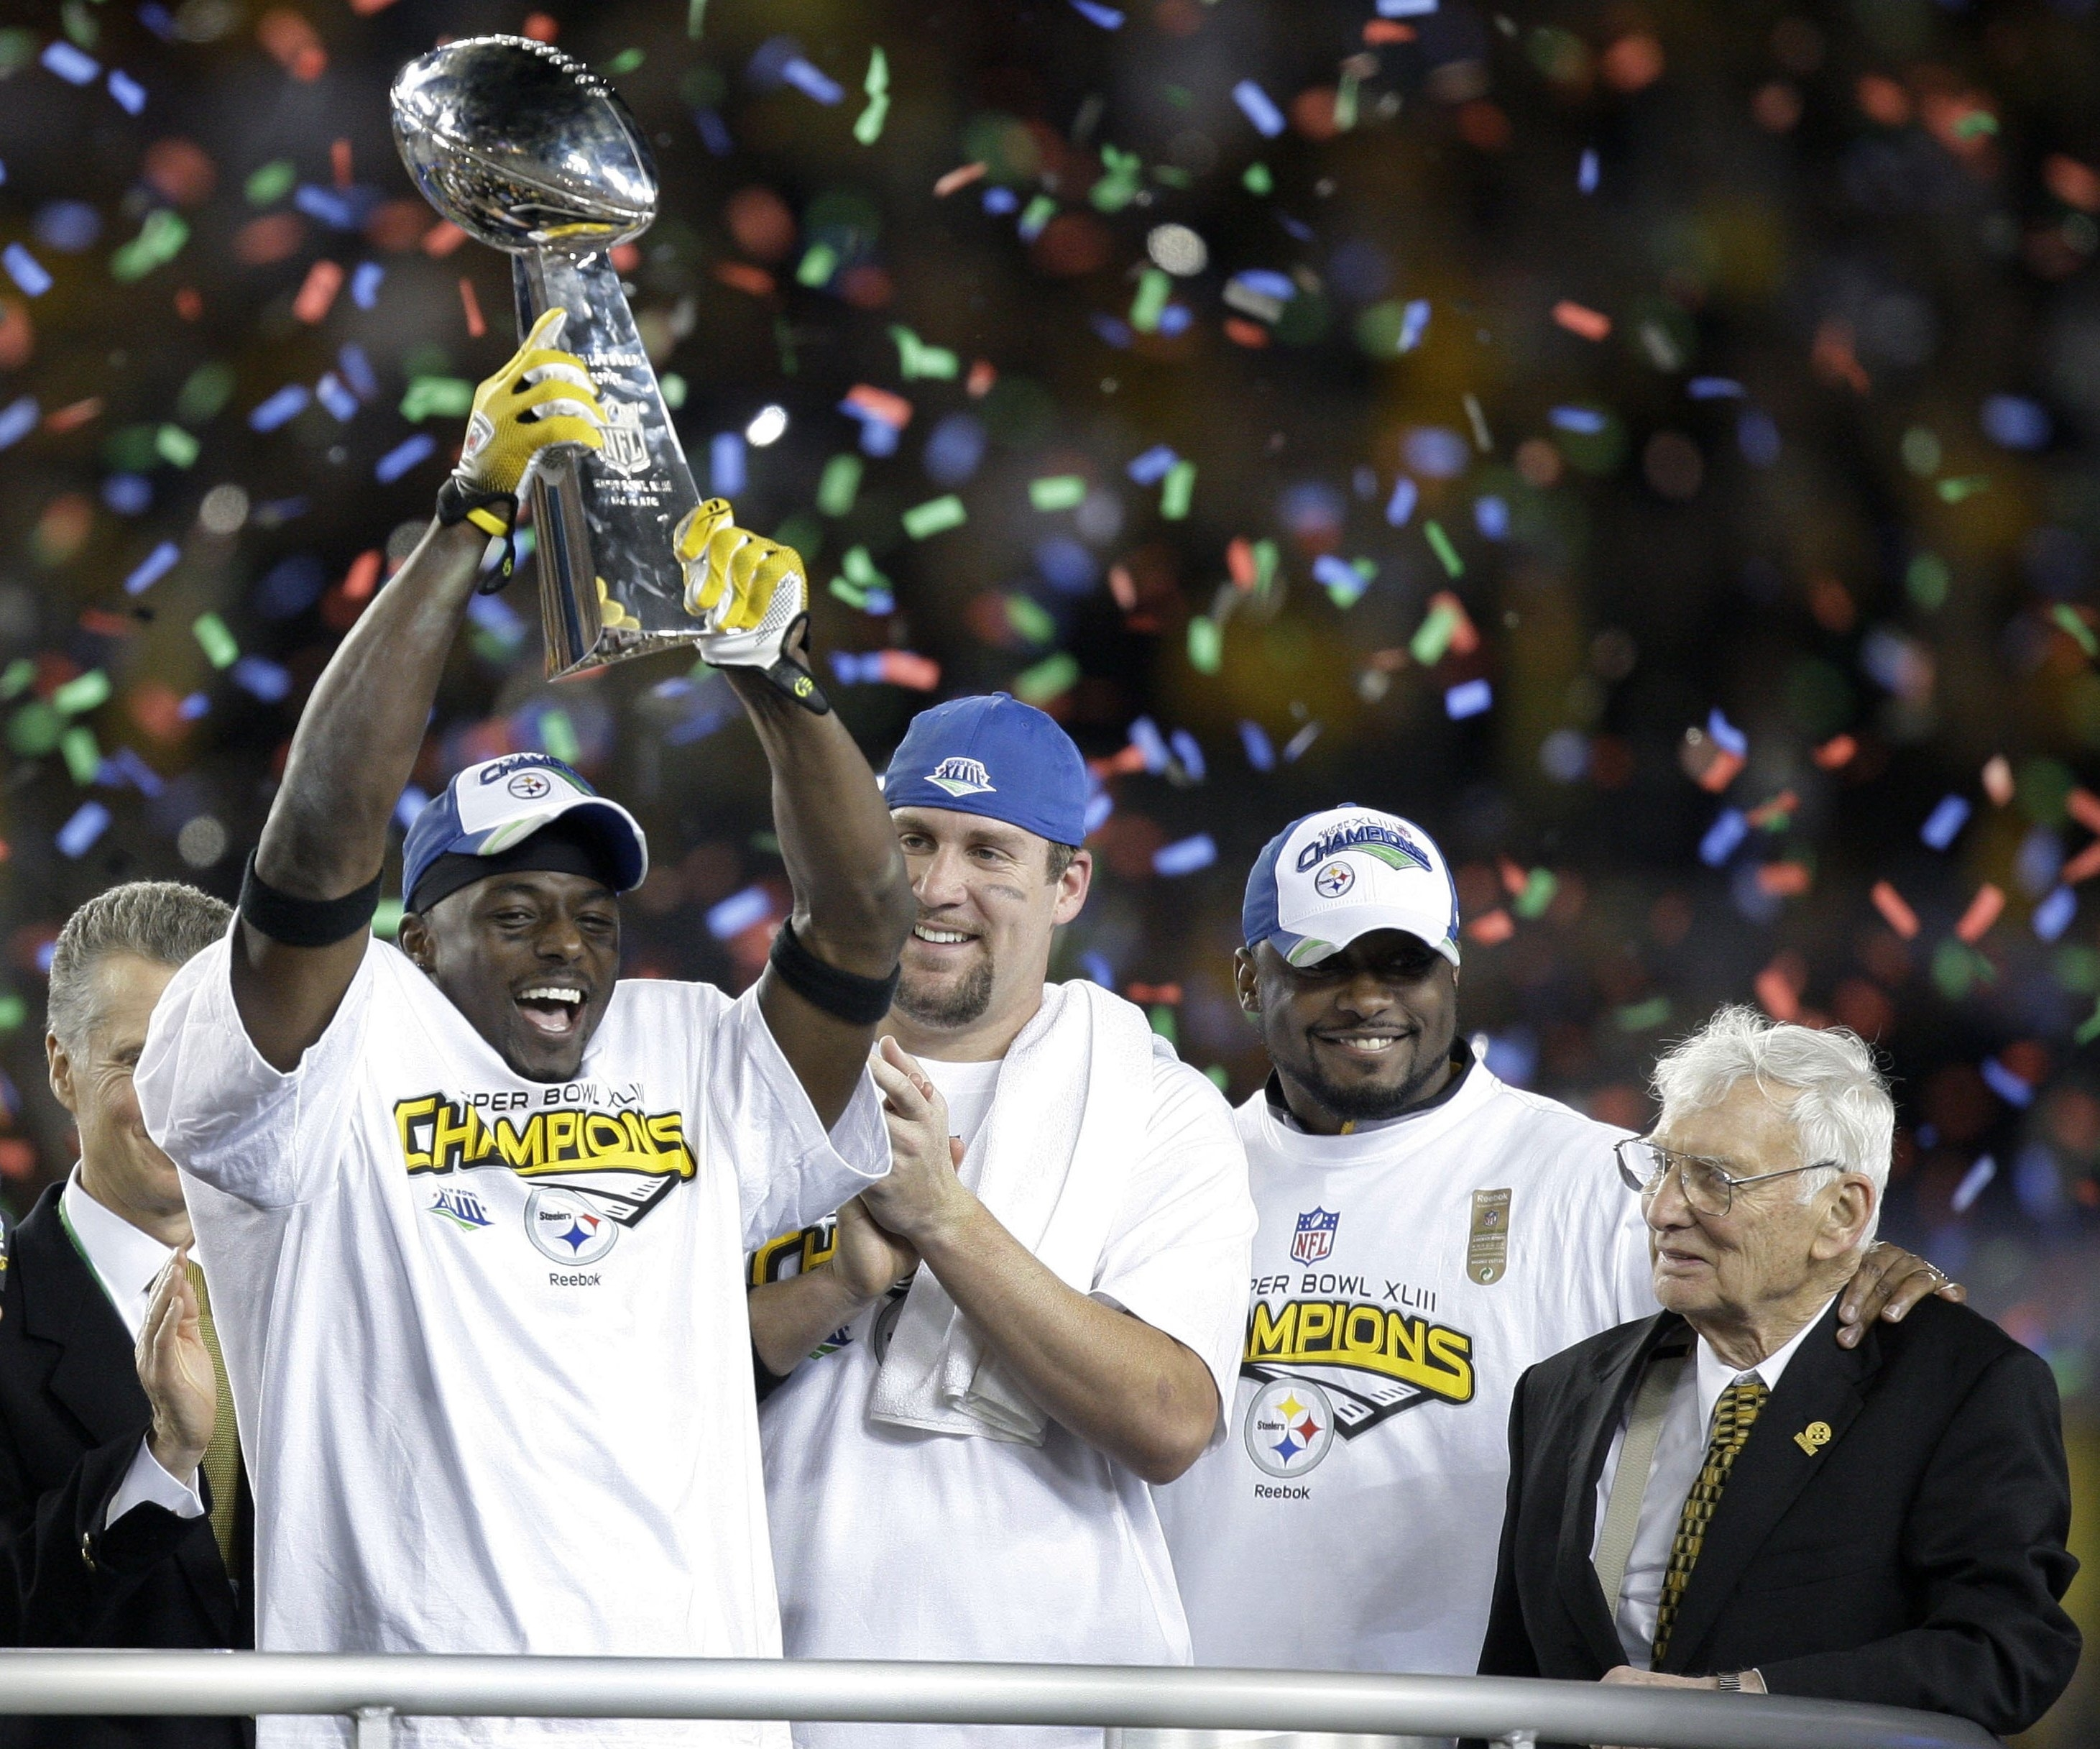 Big Ben A Worthy Hero | The Spokesman-Review intended for Ben Roethlisberger Super Bowl